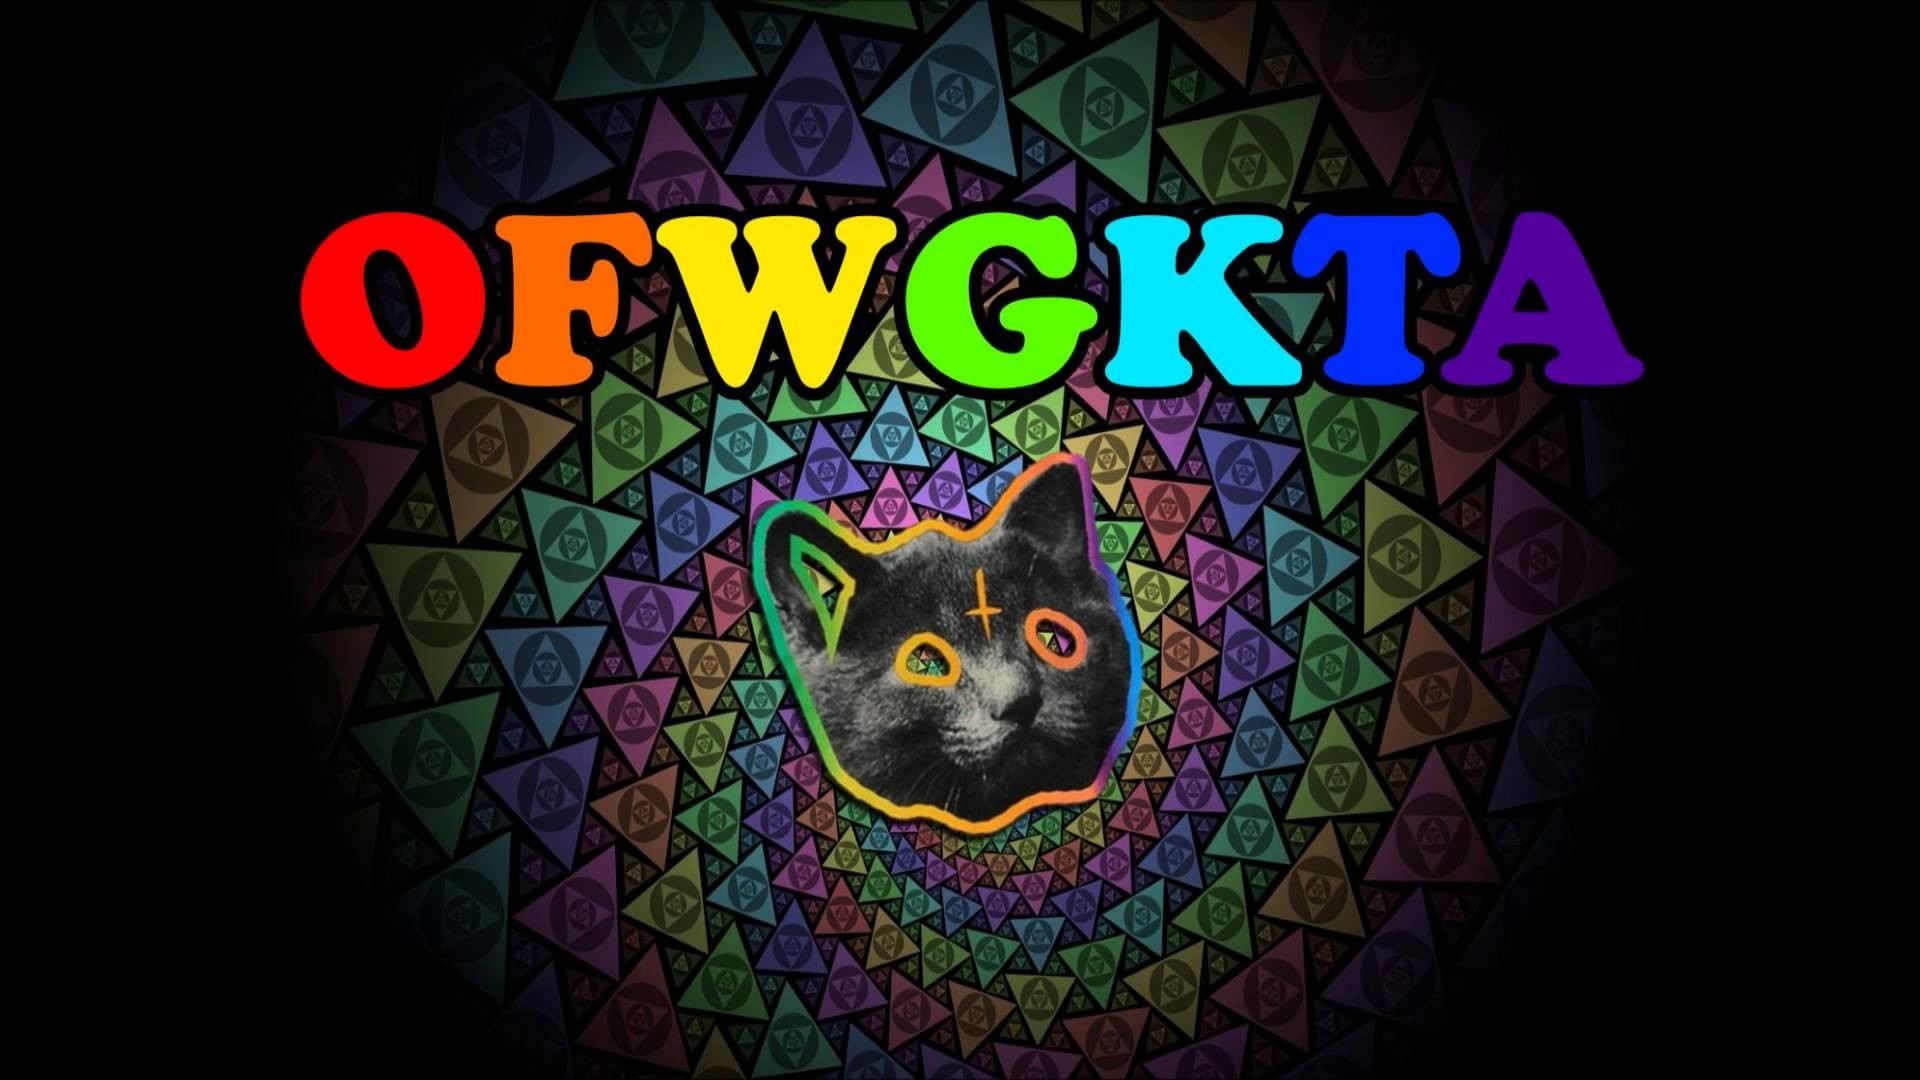 Odd Future Home Wallpaper HD (55+ images)